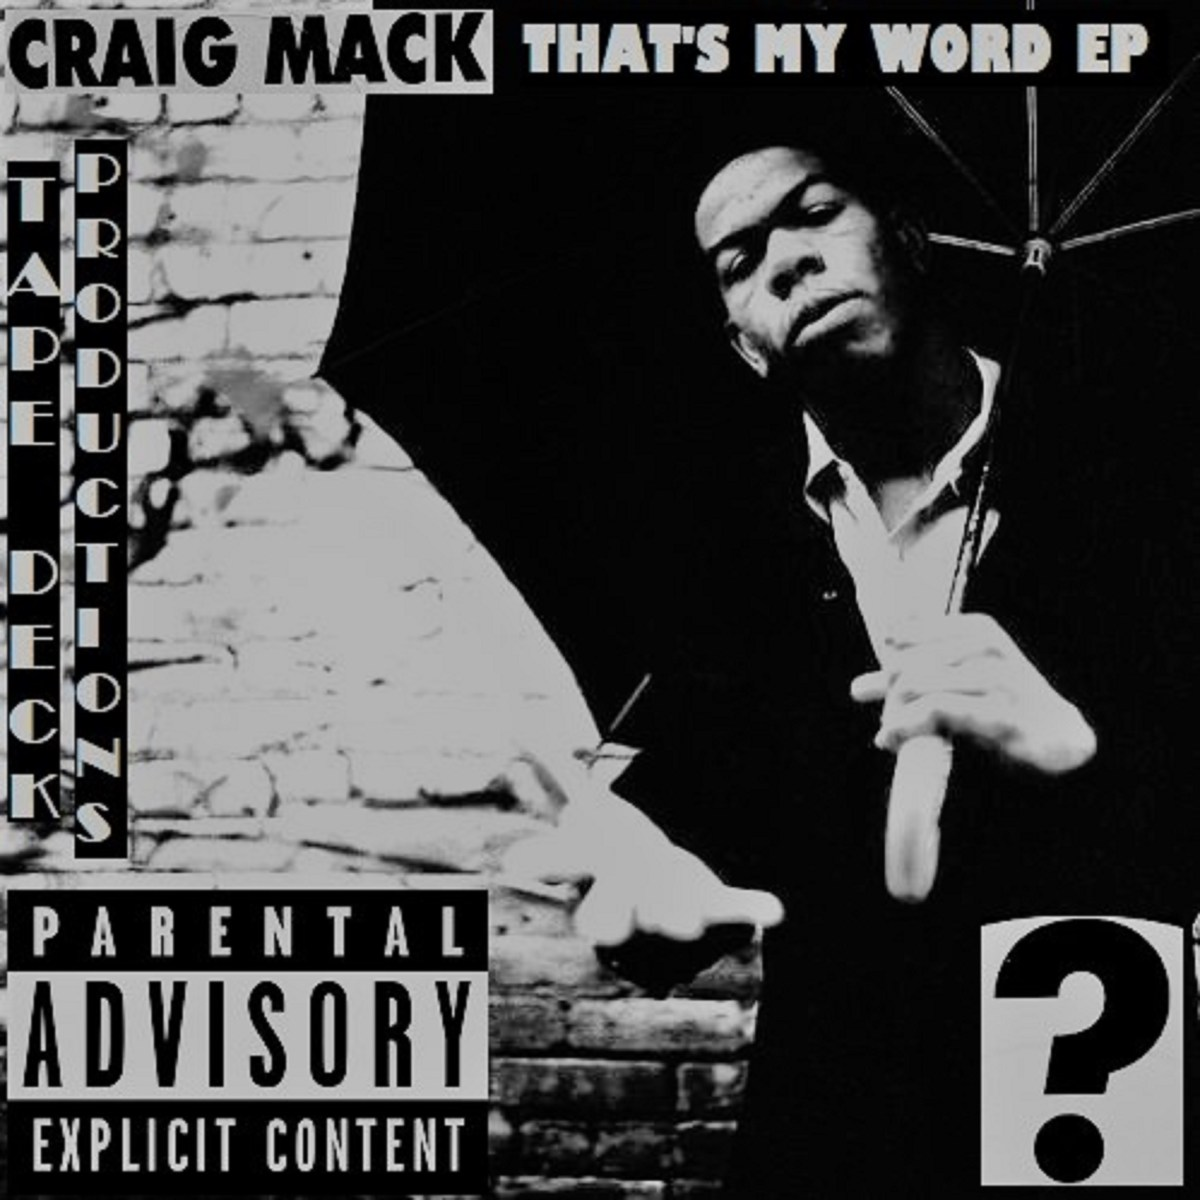 Craig Mack - That's My Word EP (Stream + Purchase)